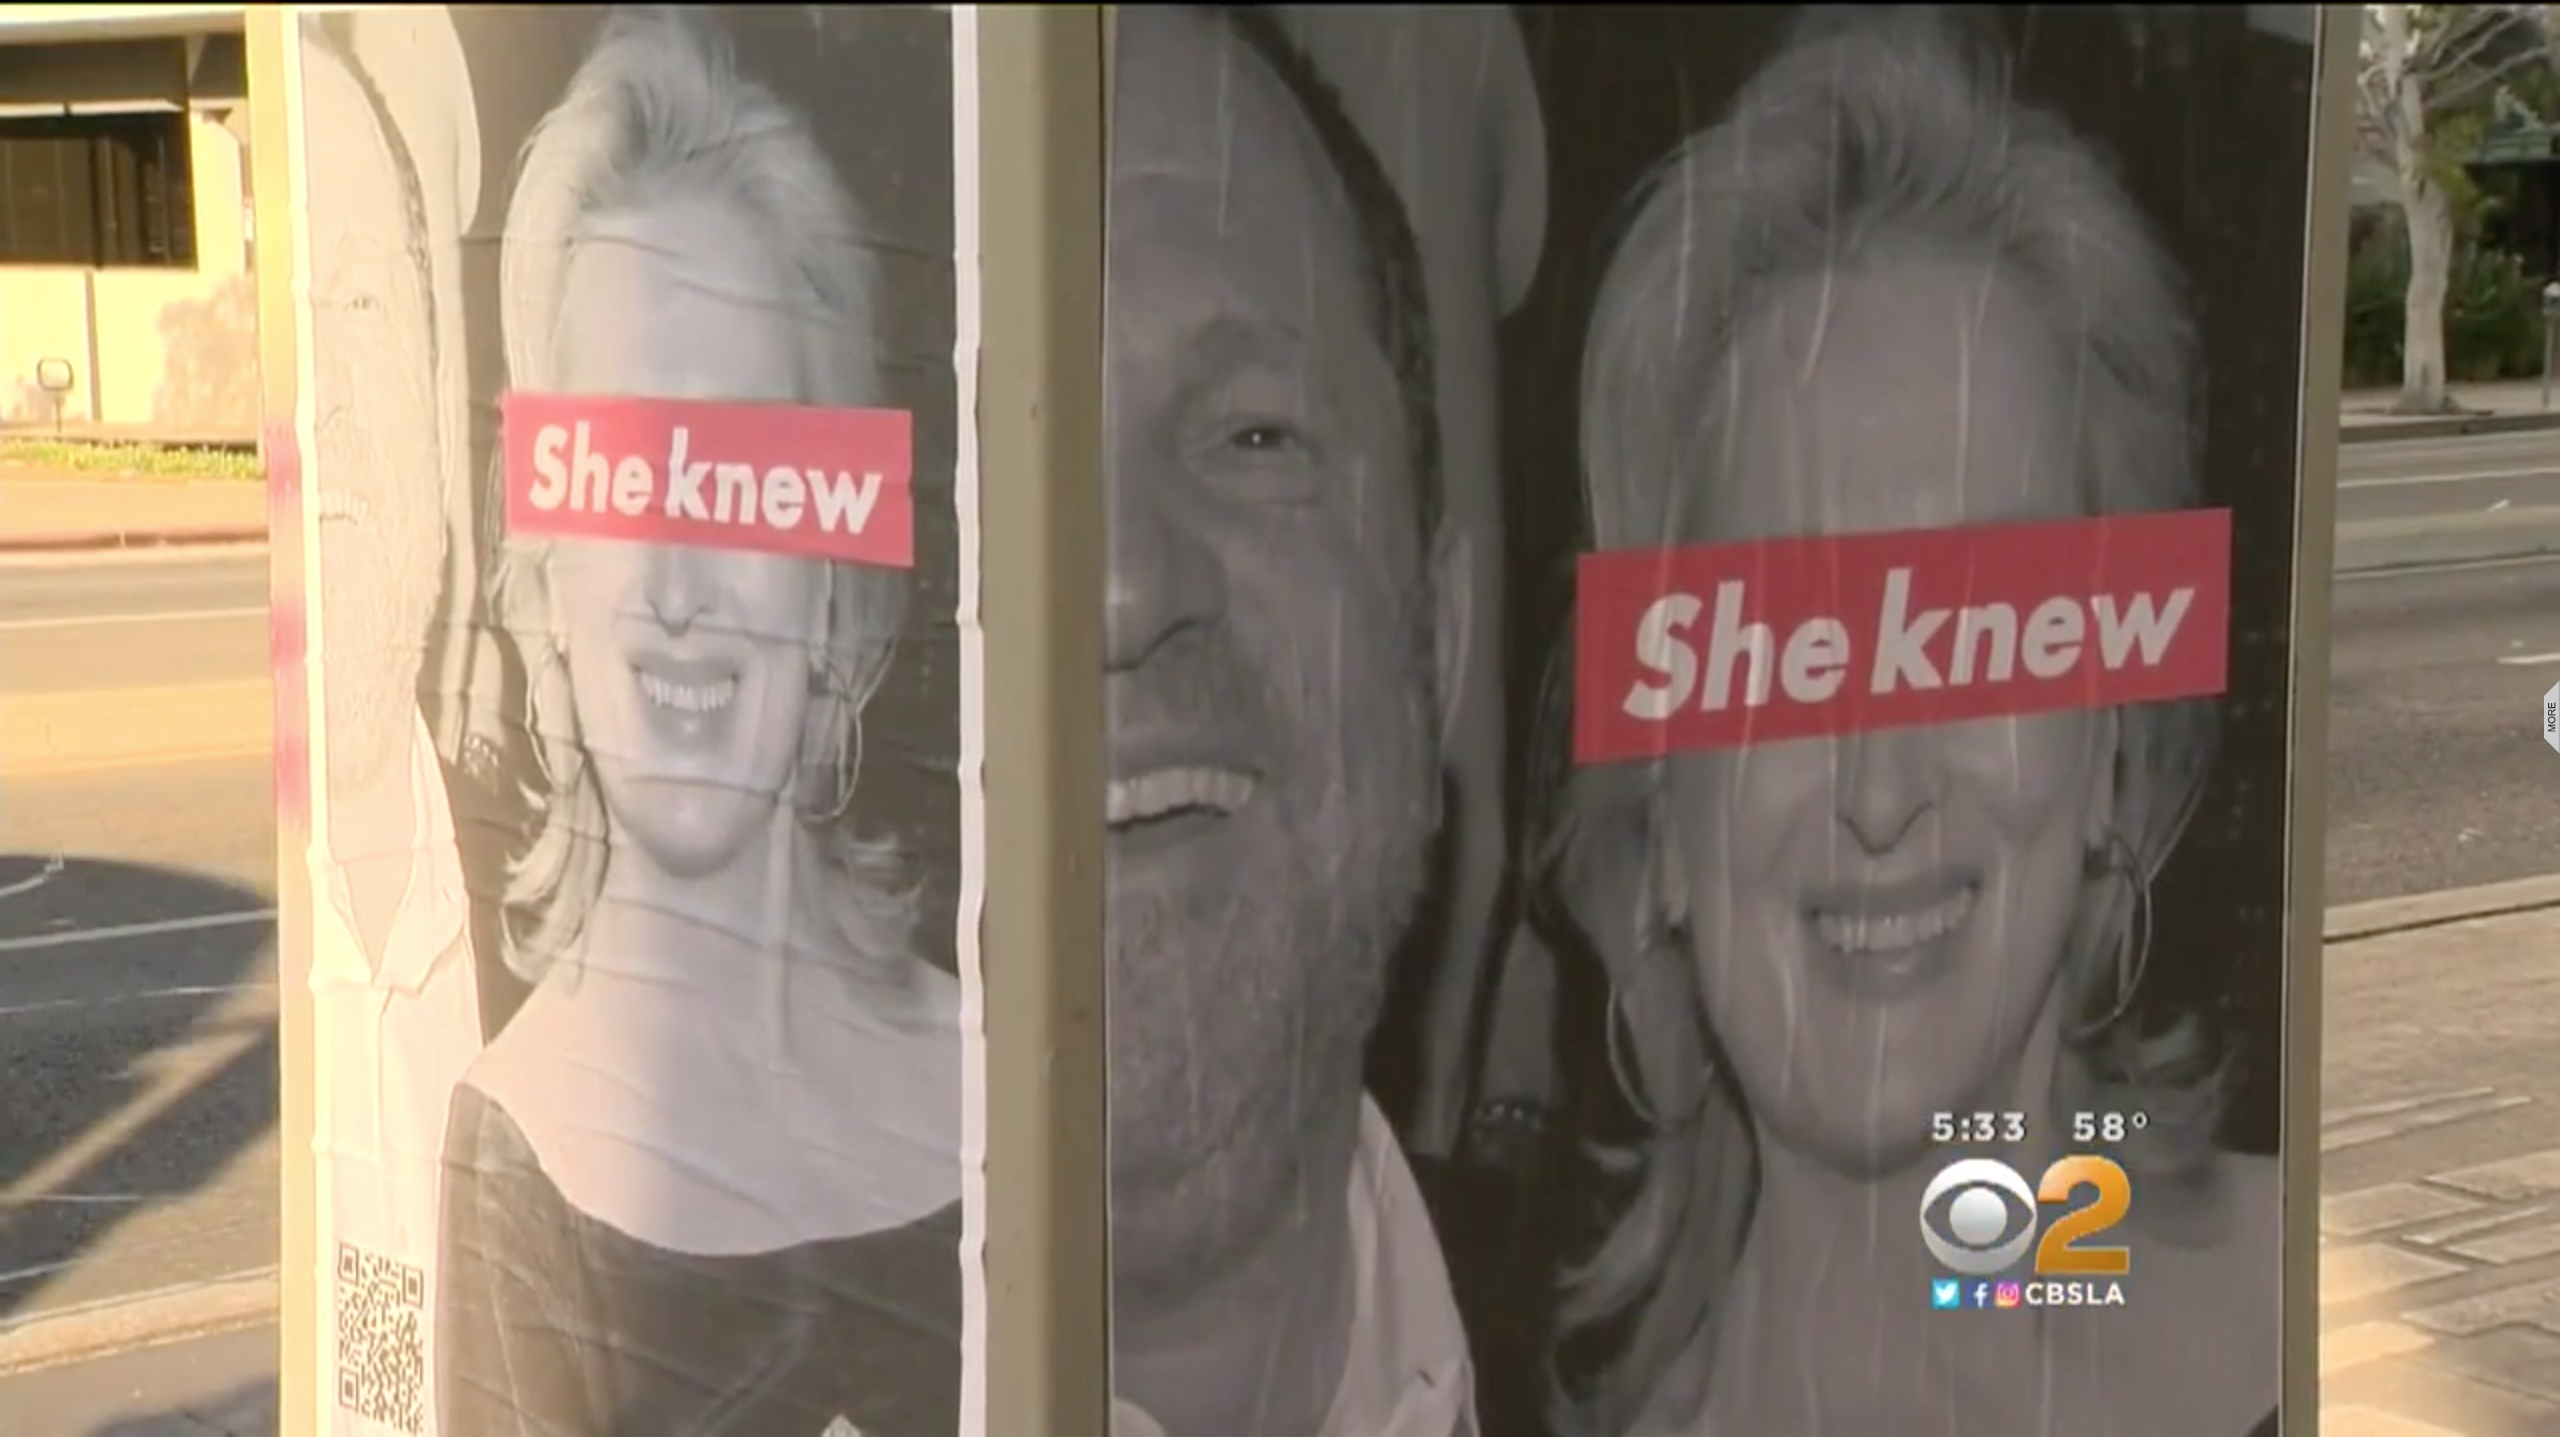 Meryl Streep has been targeted with 'She Knew' posters